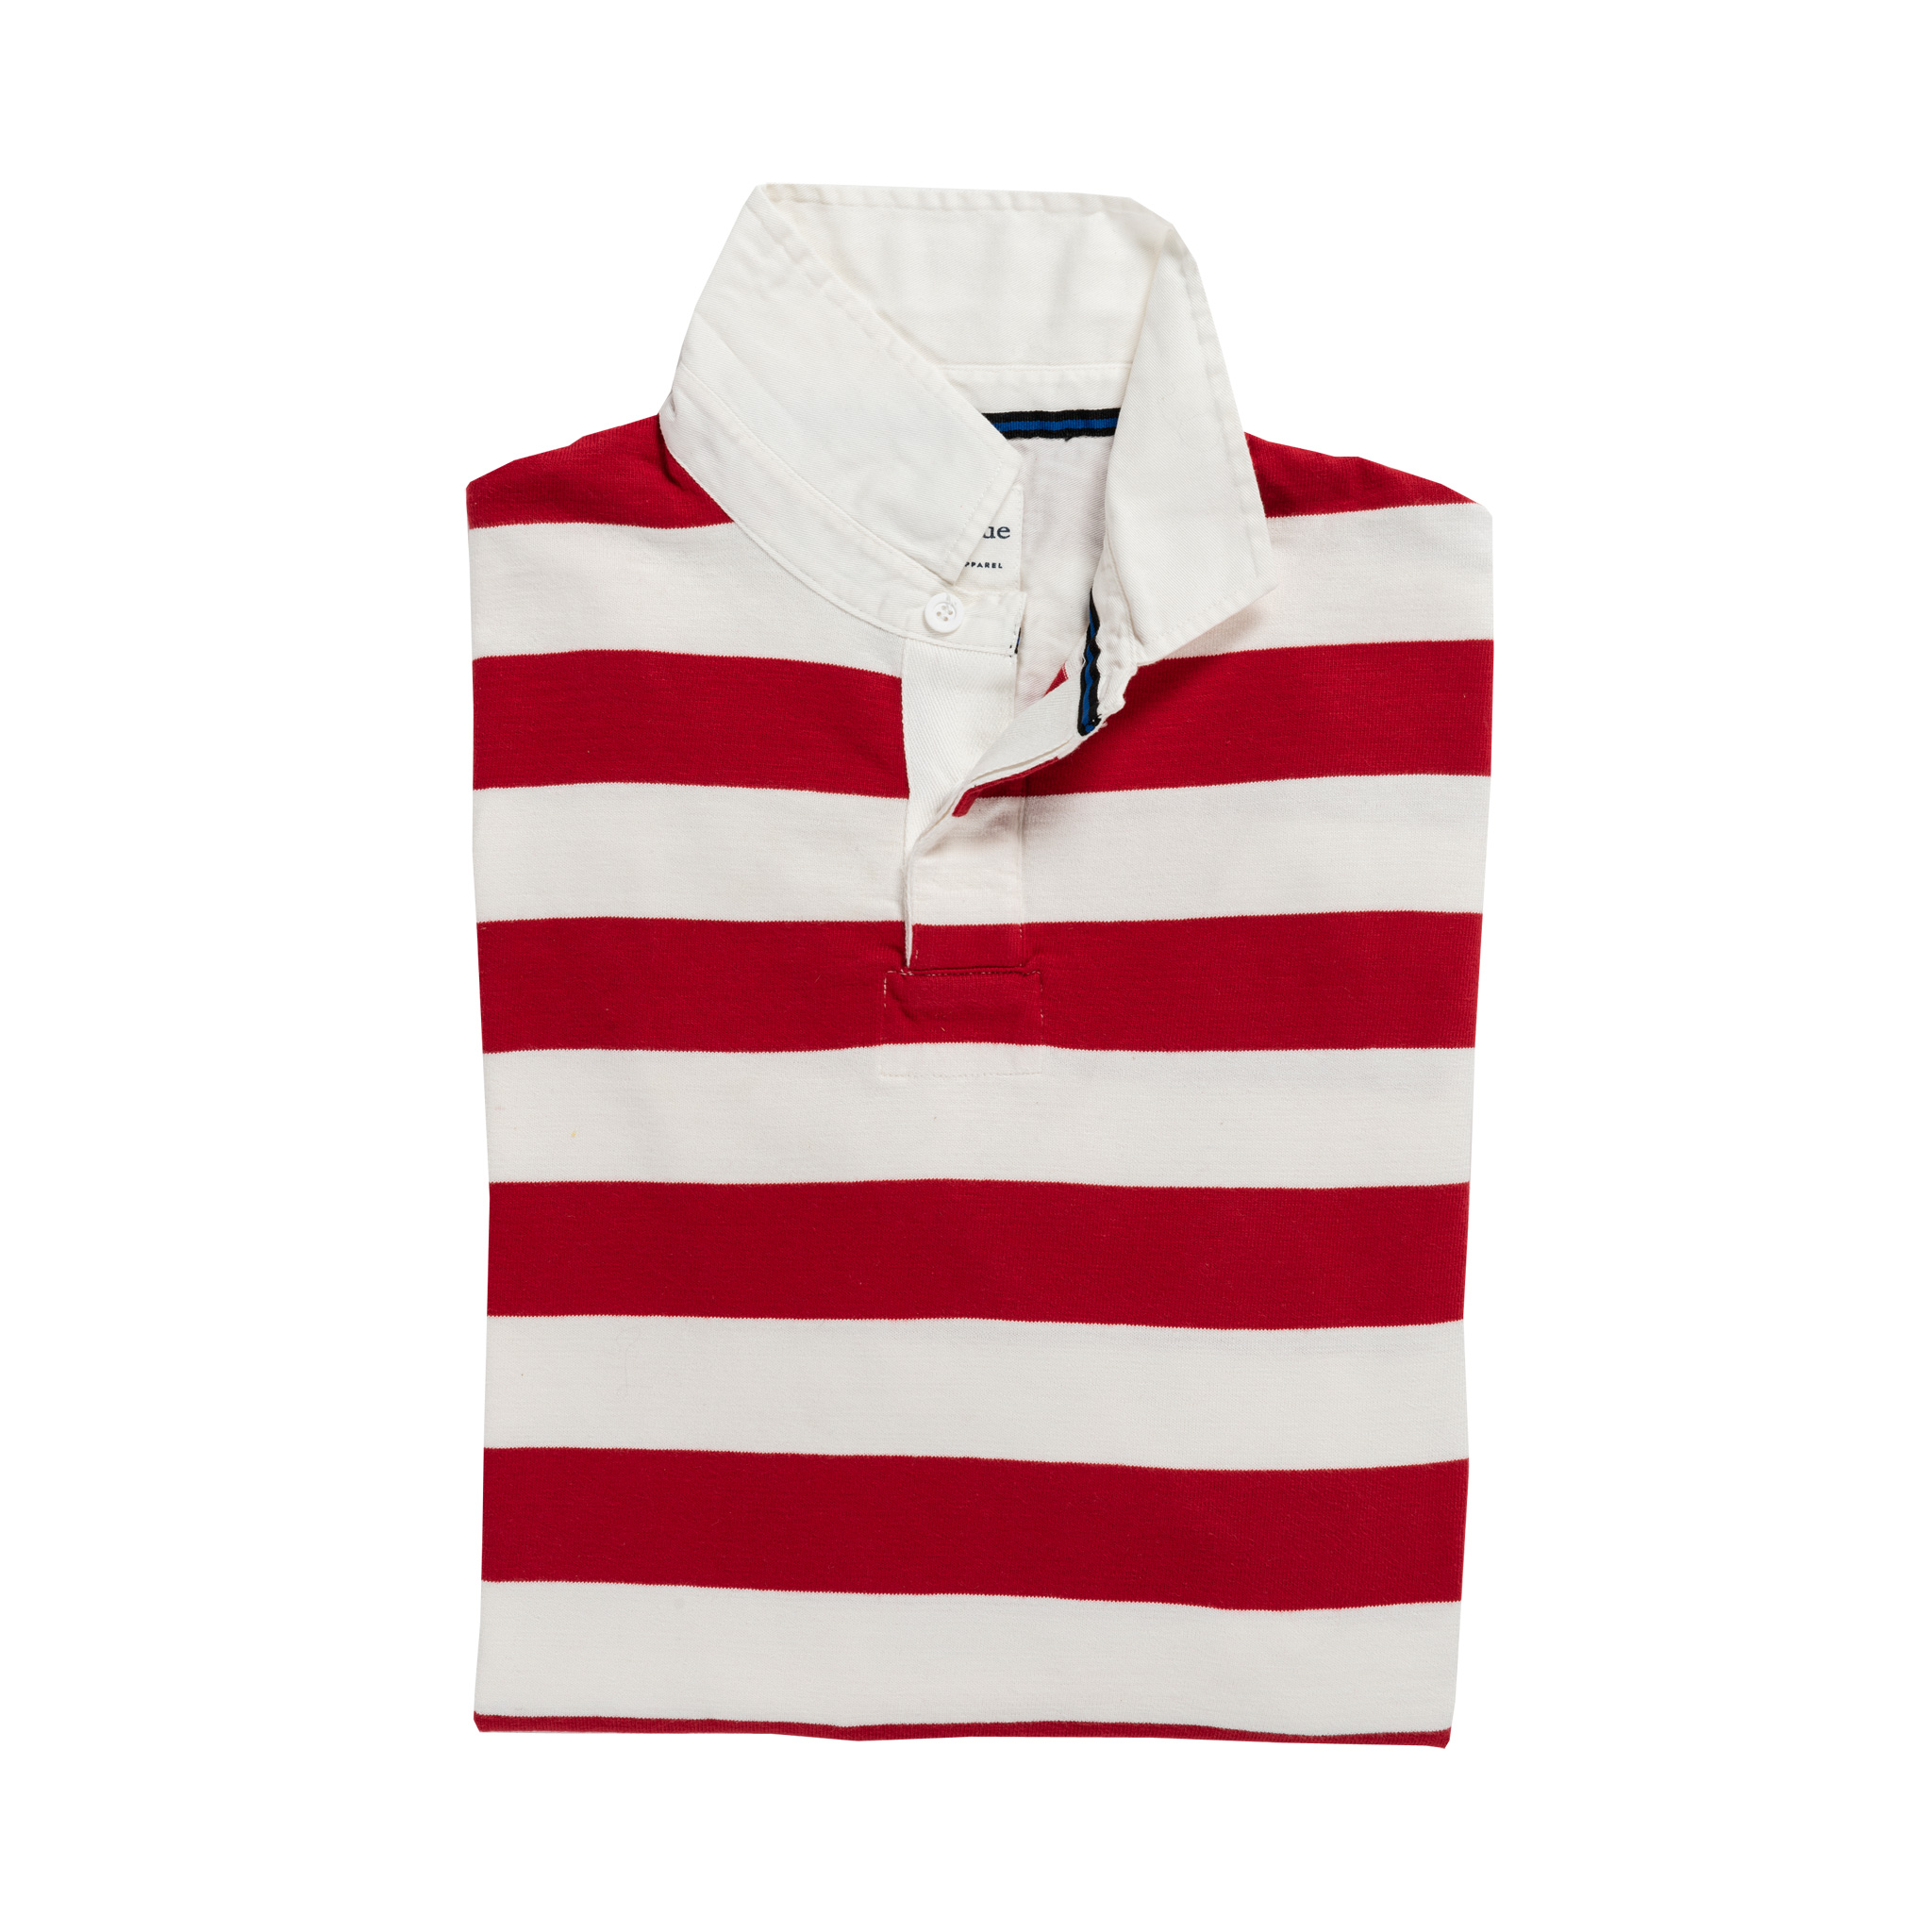 Classic Red and White 1871 Vintage Rugby Shirt